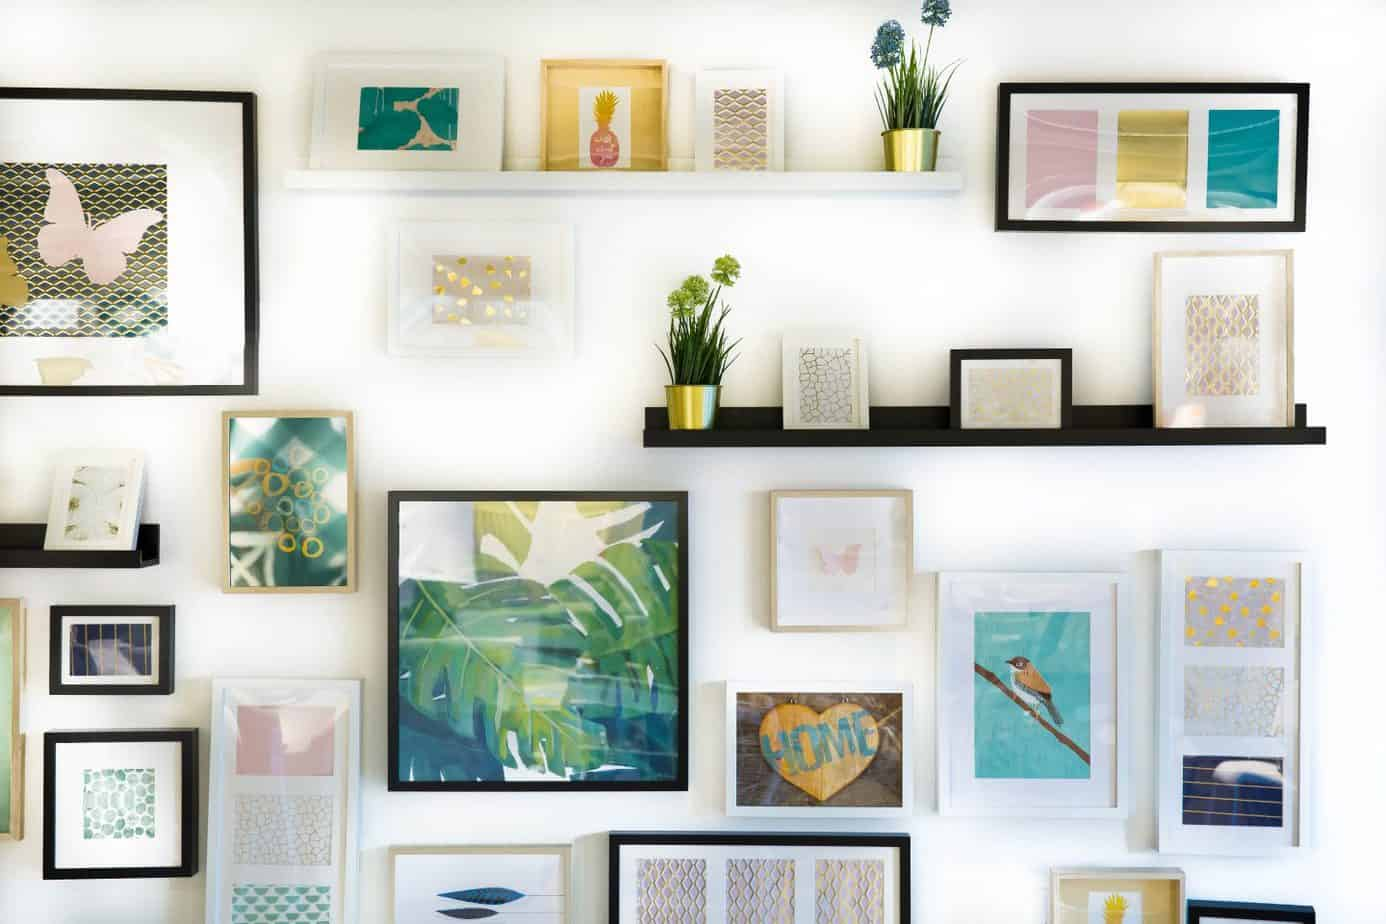 Finding Ways To Fill Your Walls